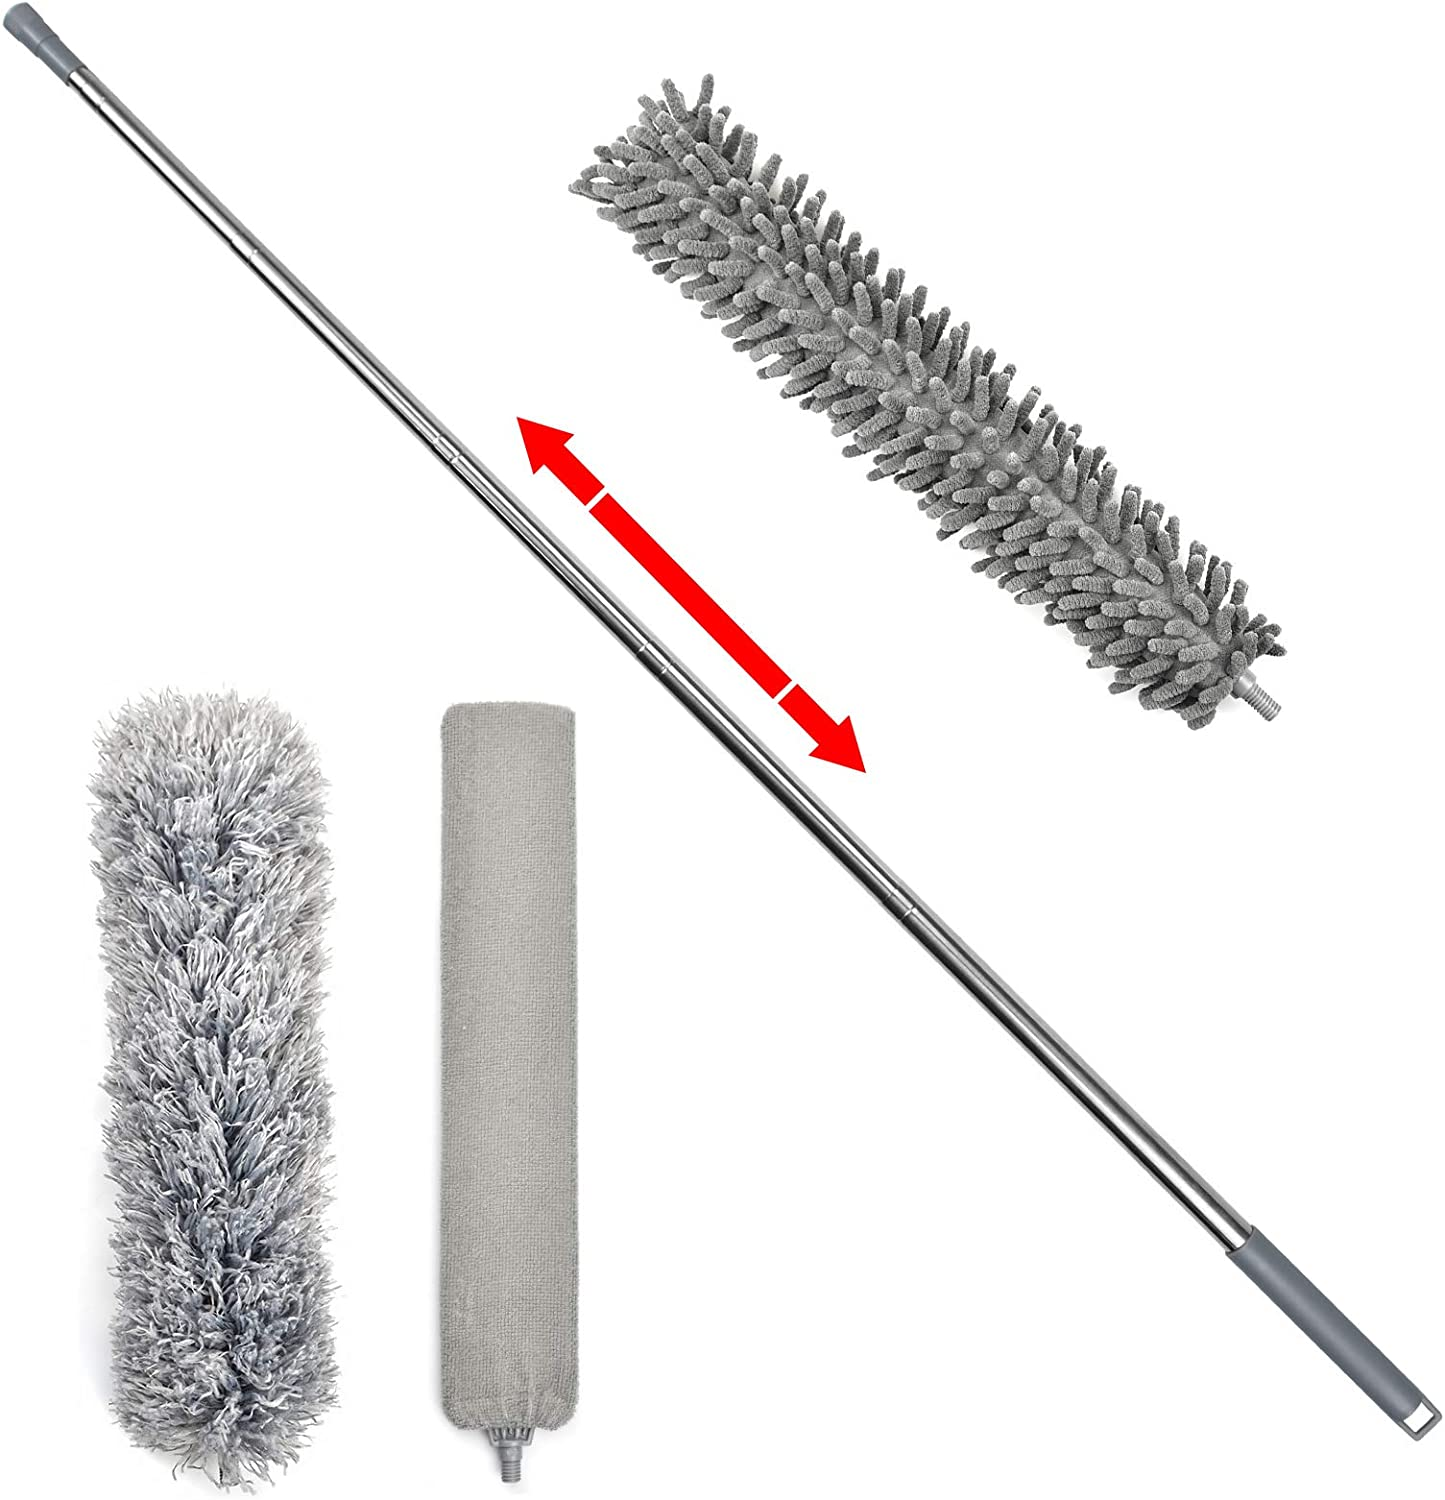 loteaf Feather Duster for Cleaning Kit 100 Inch High Reach Dusting Kit with Telescoping Pole Includes 3 Dusting Attachments, Microfiber Duster/Under Appliances Duster/Chenille Ceiling Fan Duster